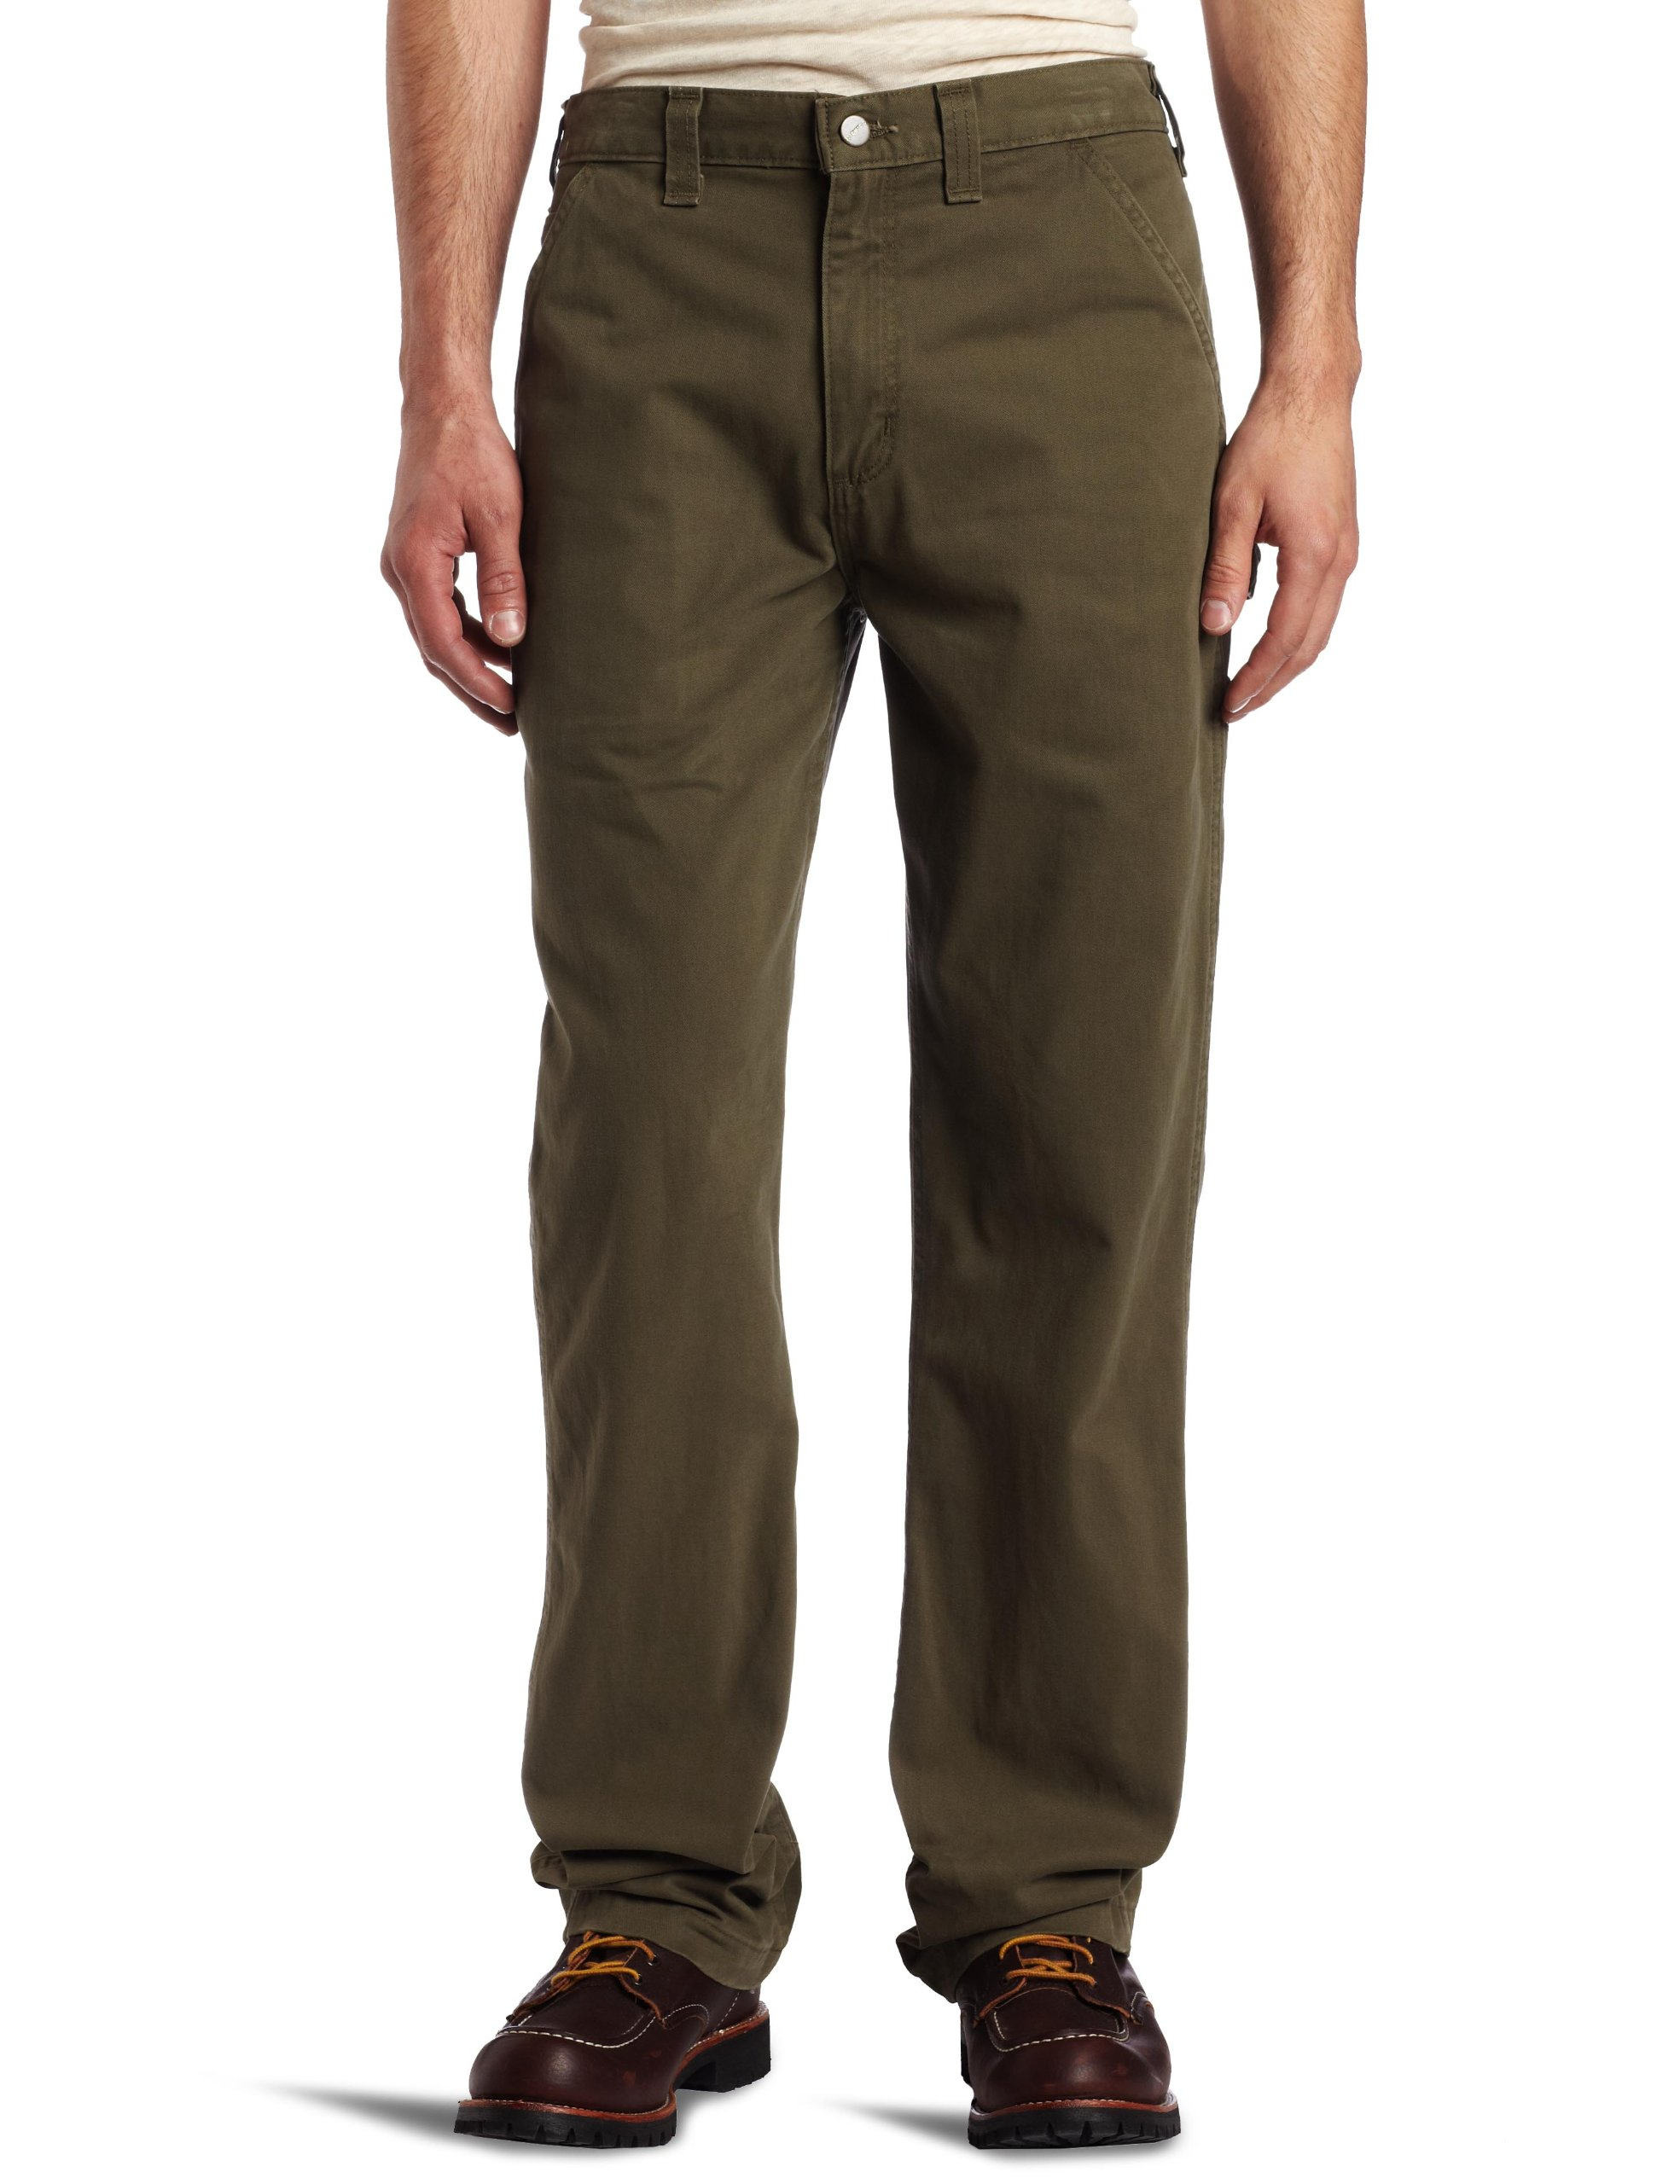 Carhartt Men's Washed Twill Dungaree Relaxed Fit,Army Green,38 x 36